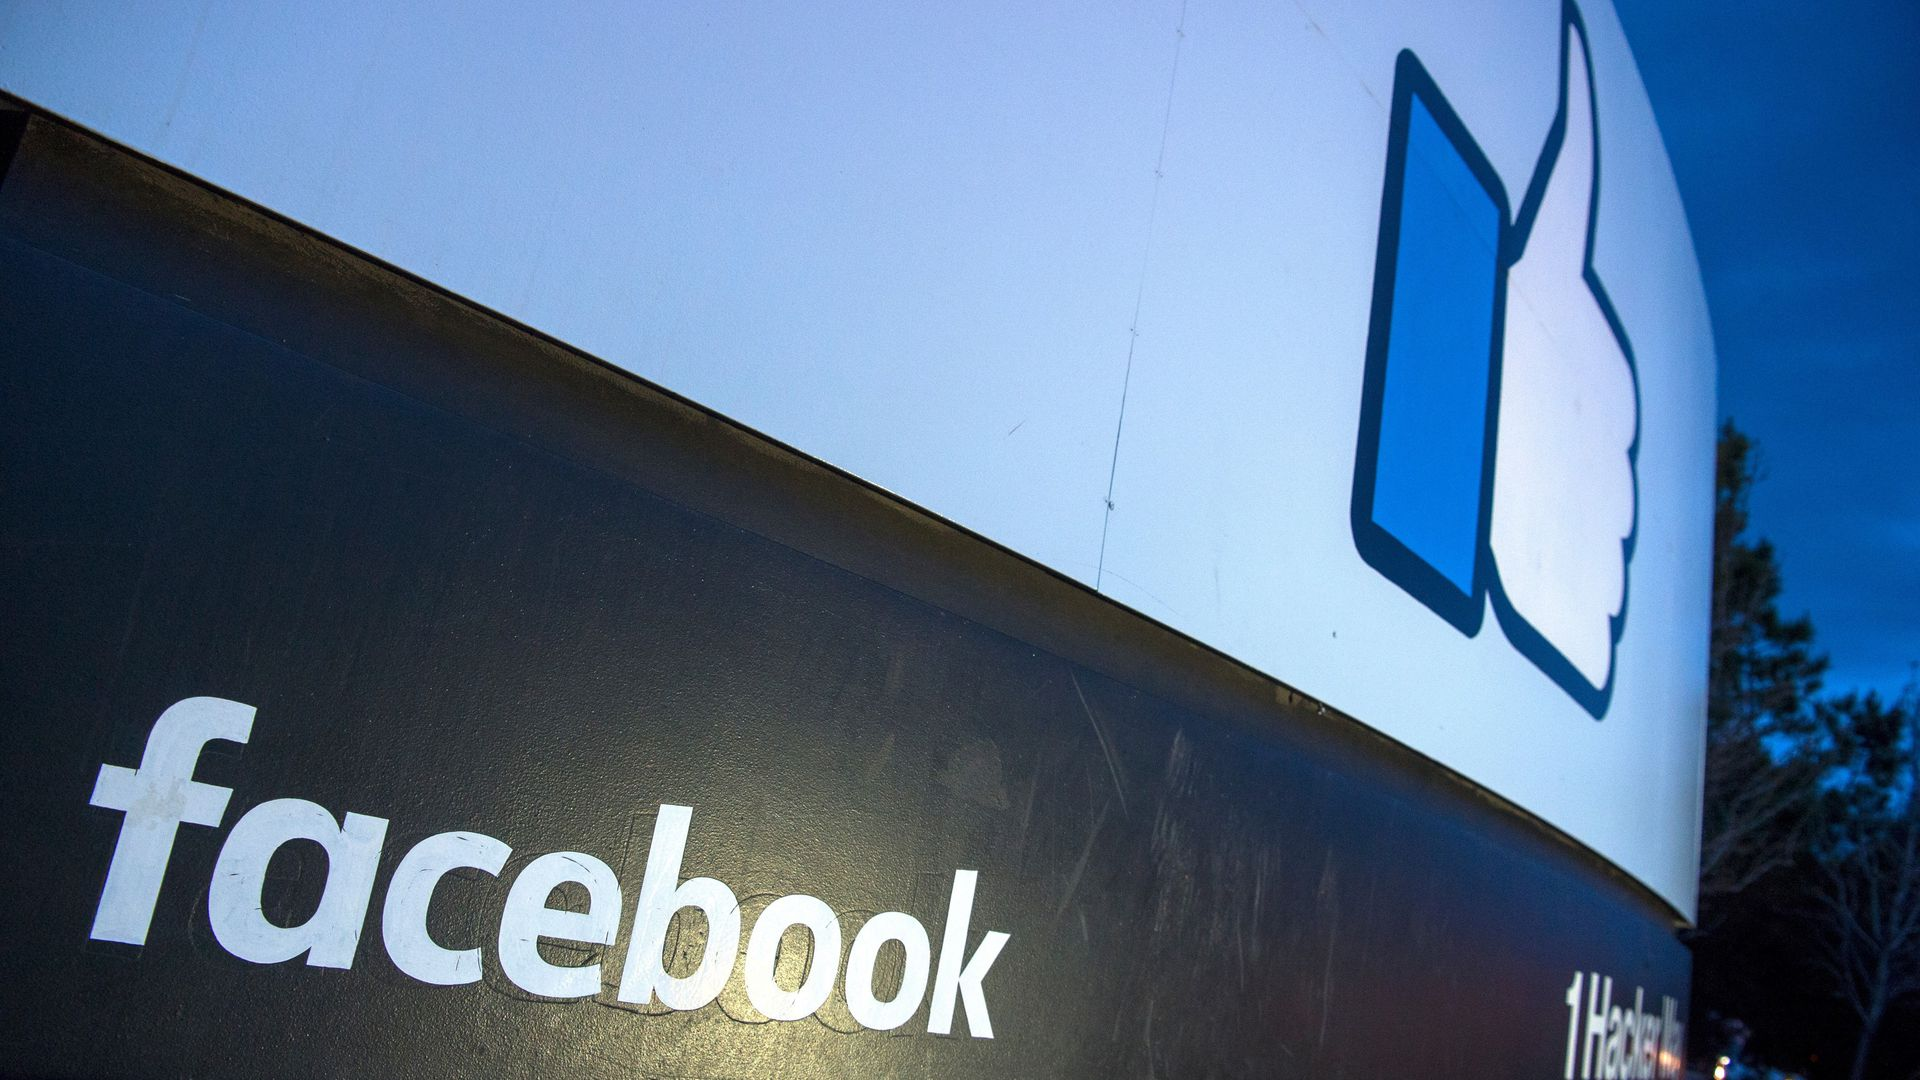 The facebook logo at its headquarters.